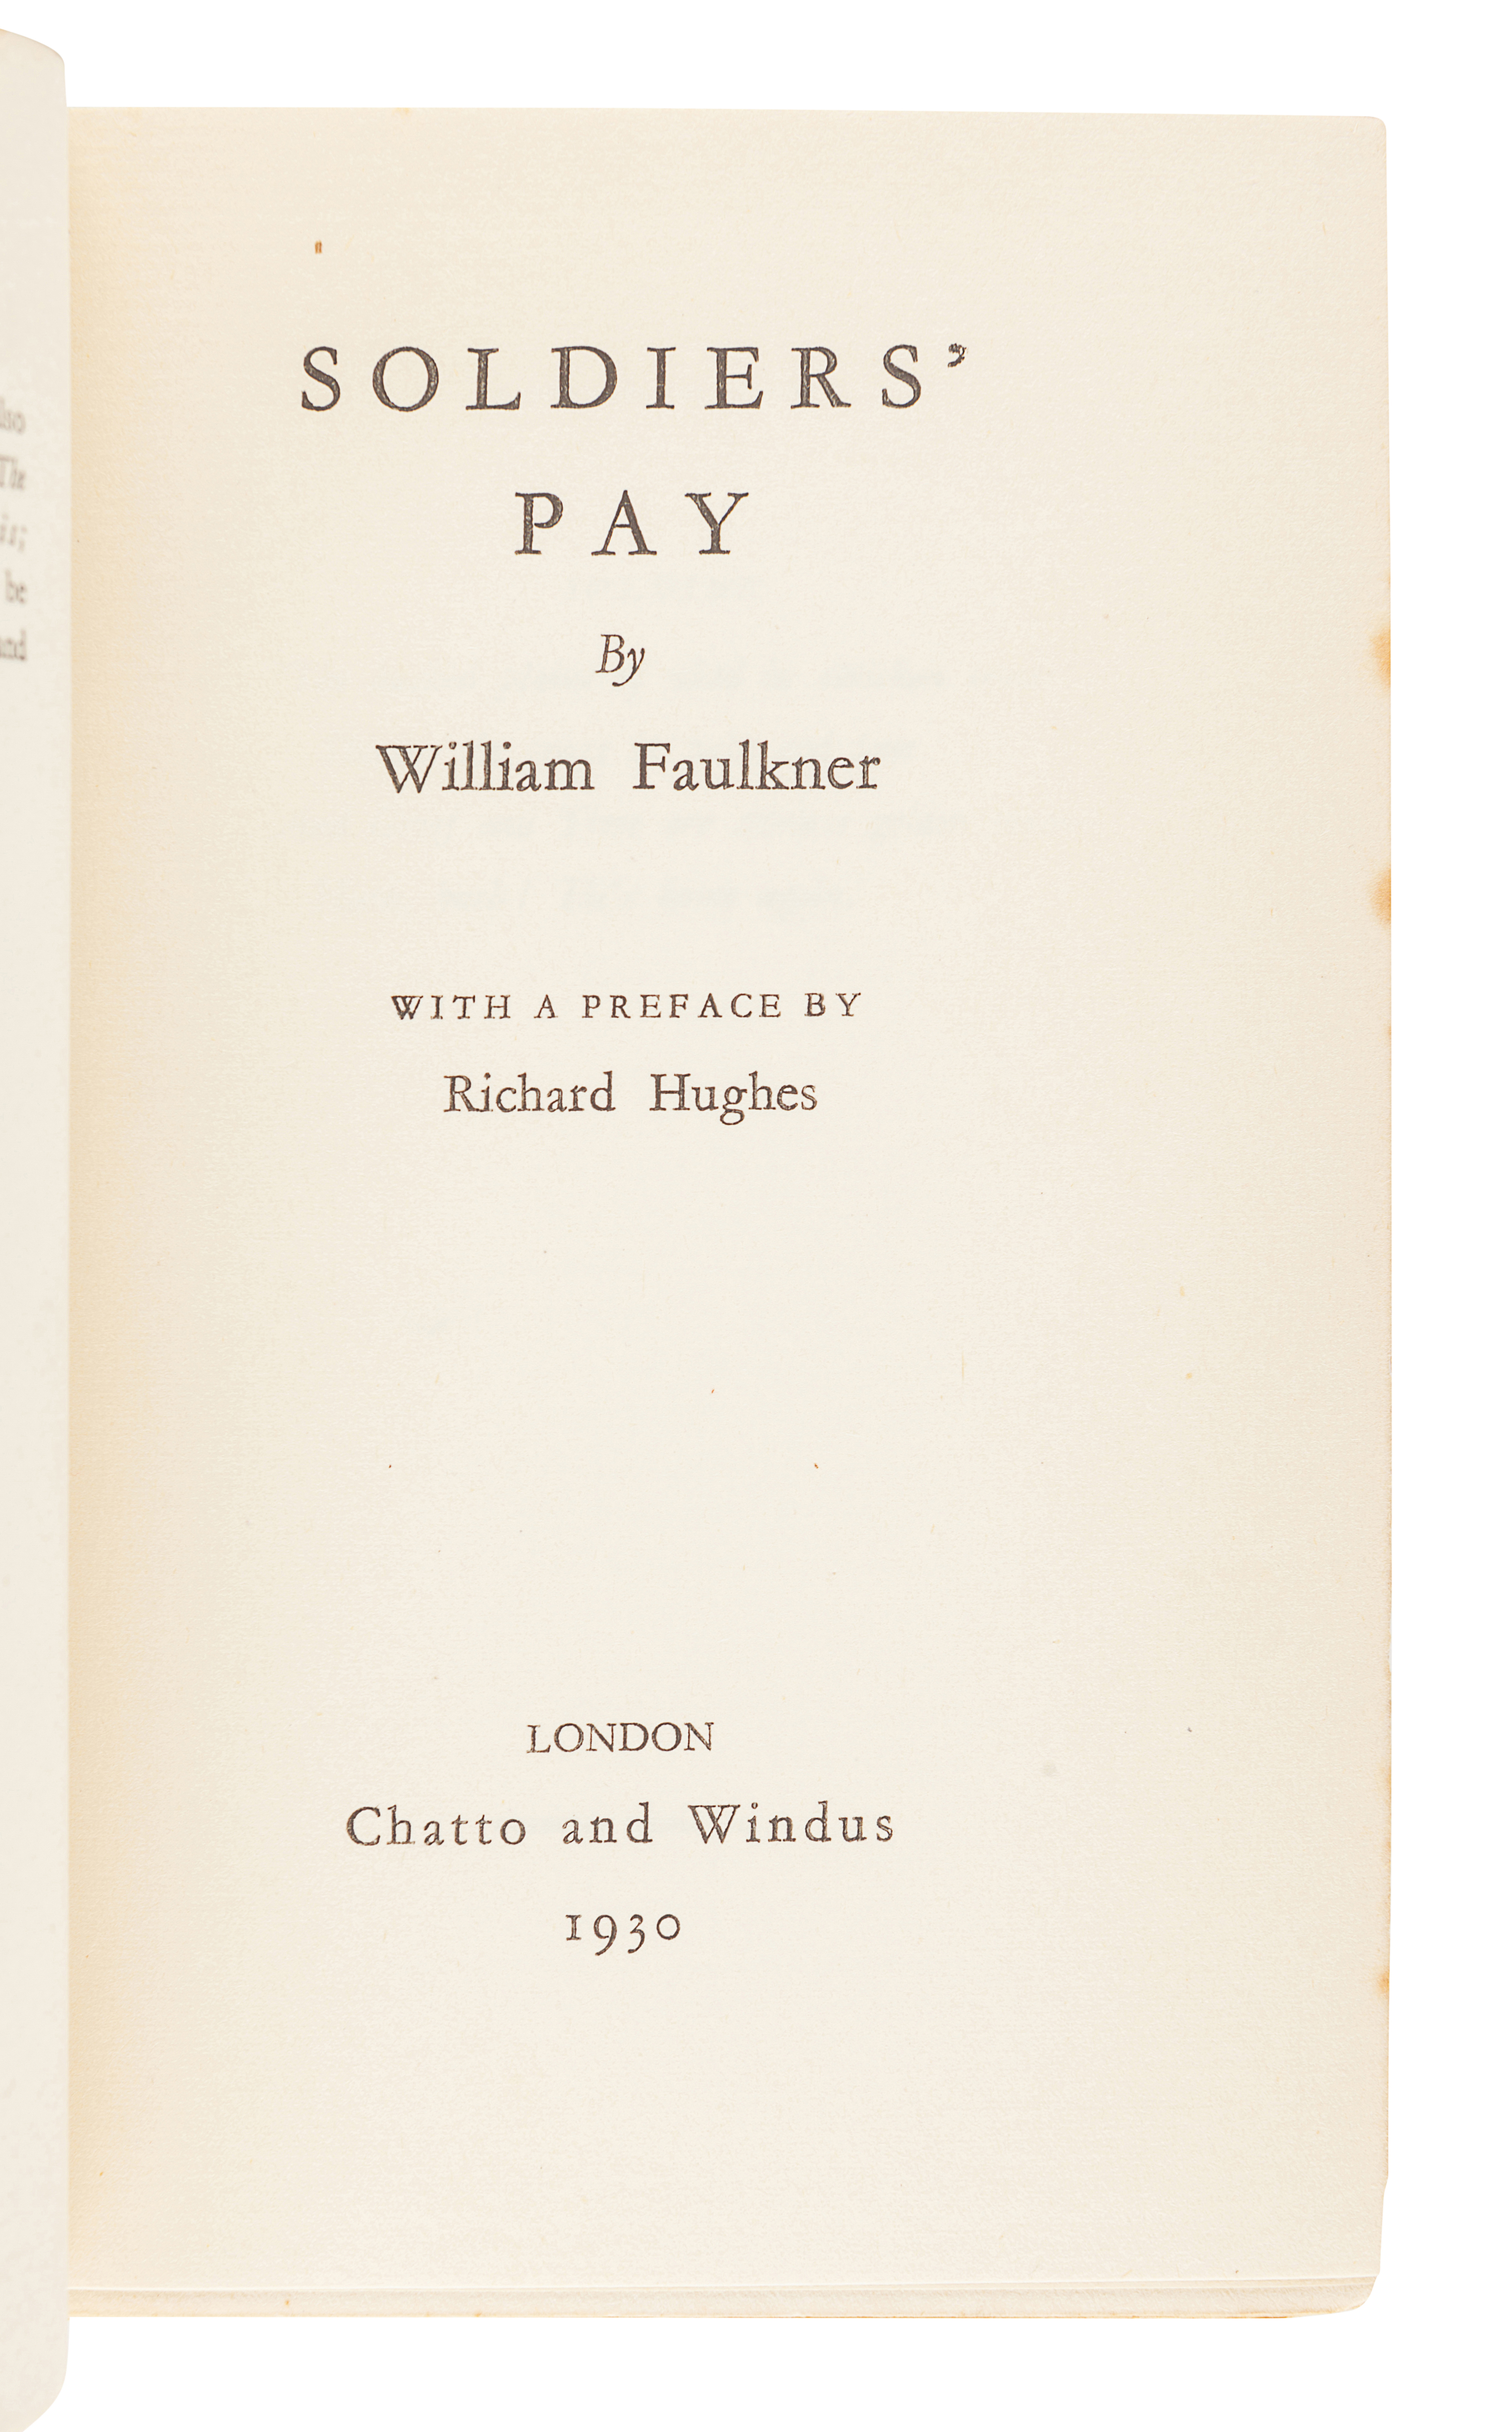 FAULKNER, William (1897-1962). Soldiers' Pay. New York: Boni & Liveright, 1926. - Image 3 of 3